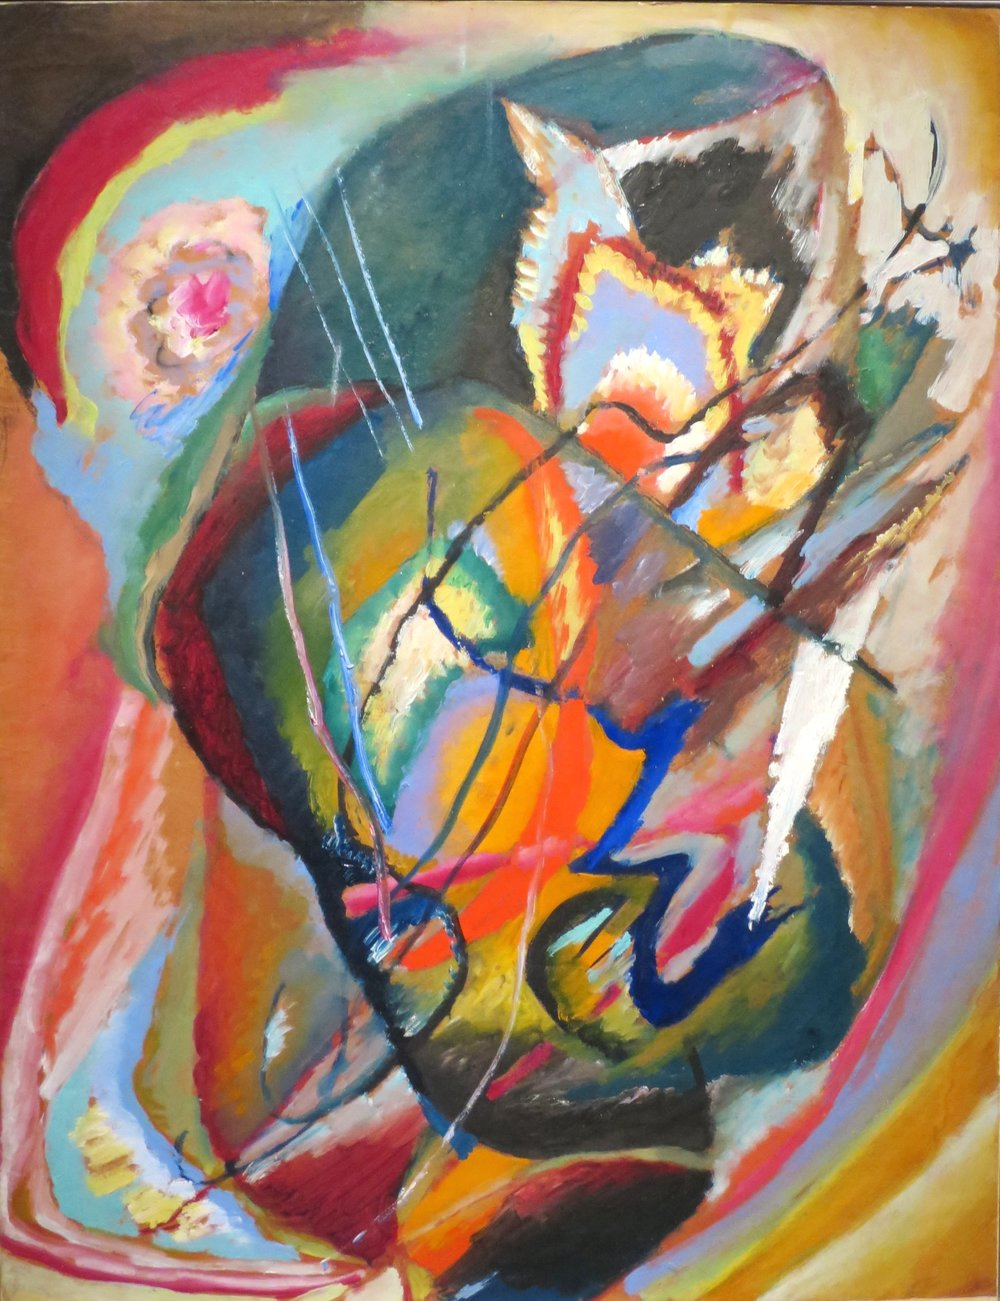 Untitled Improvisation III , 1914, by Wassily Kandinsky (1866-1944)